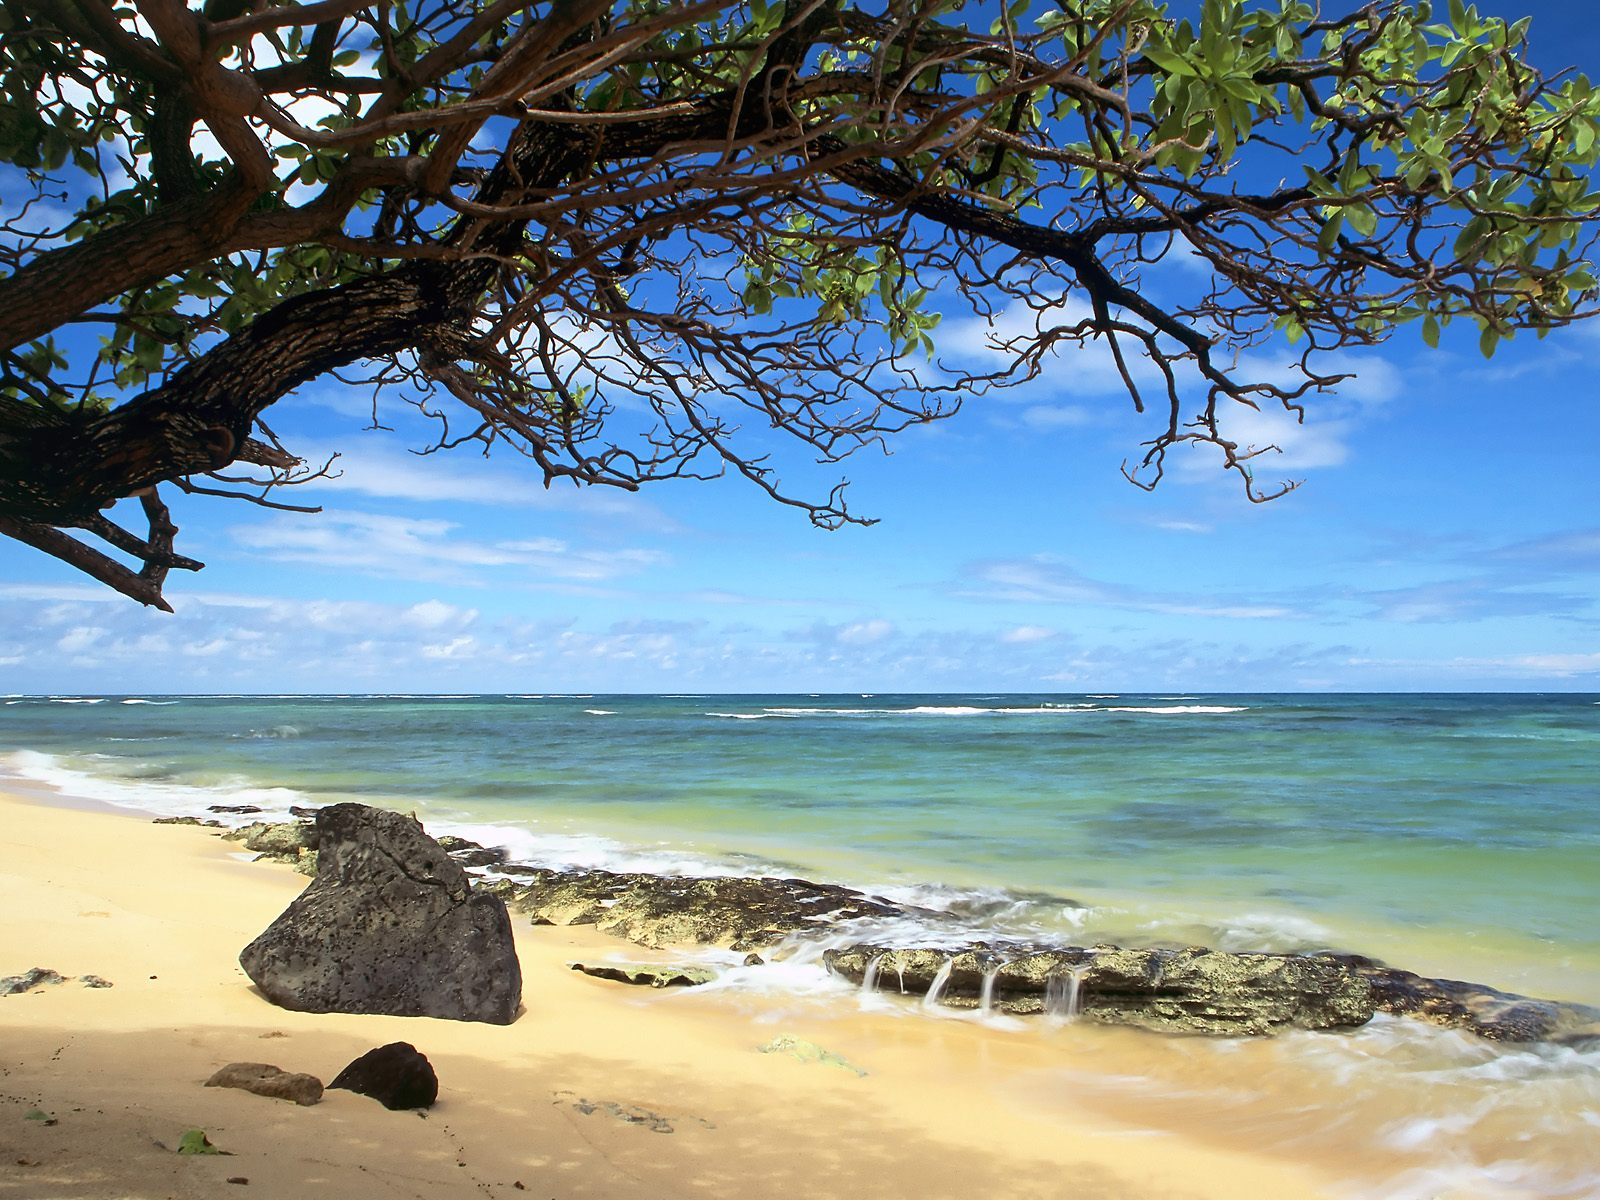 ayay co uk kanenelu beach oahu hawaii nature wallpaper image featuring 1600x1200